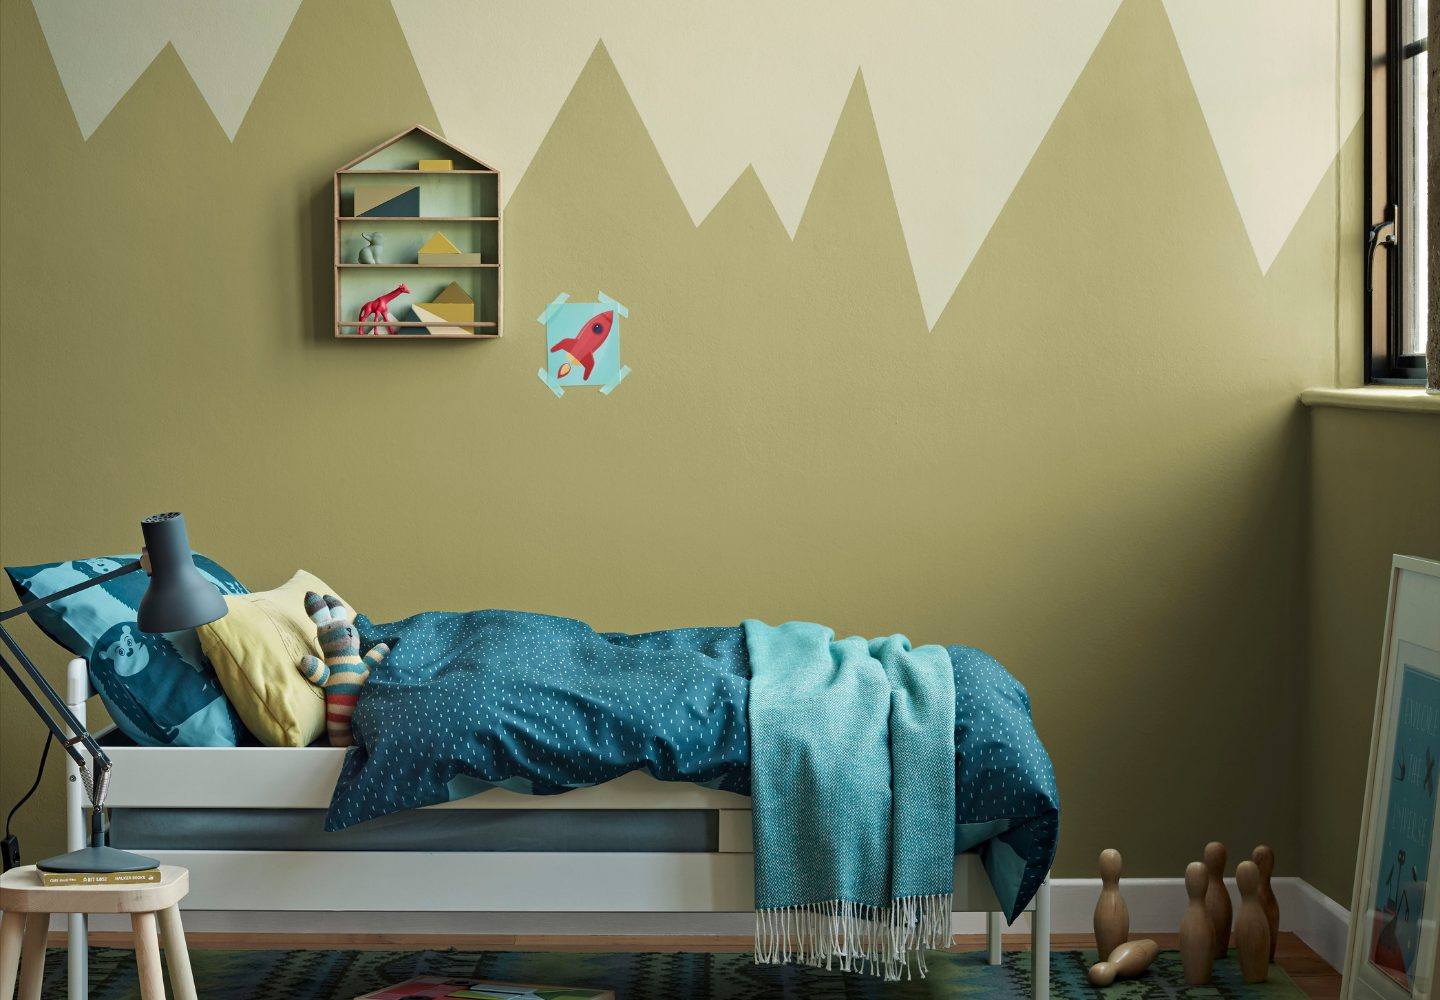 Crown Paints Allergy Standards asthma & allergy friendly